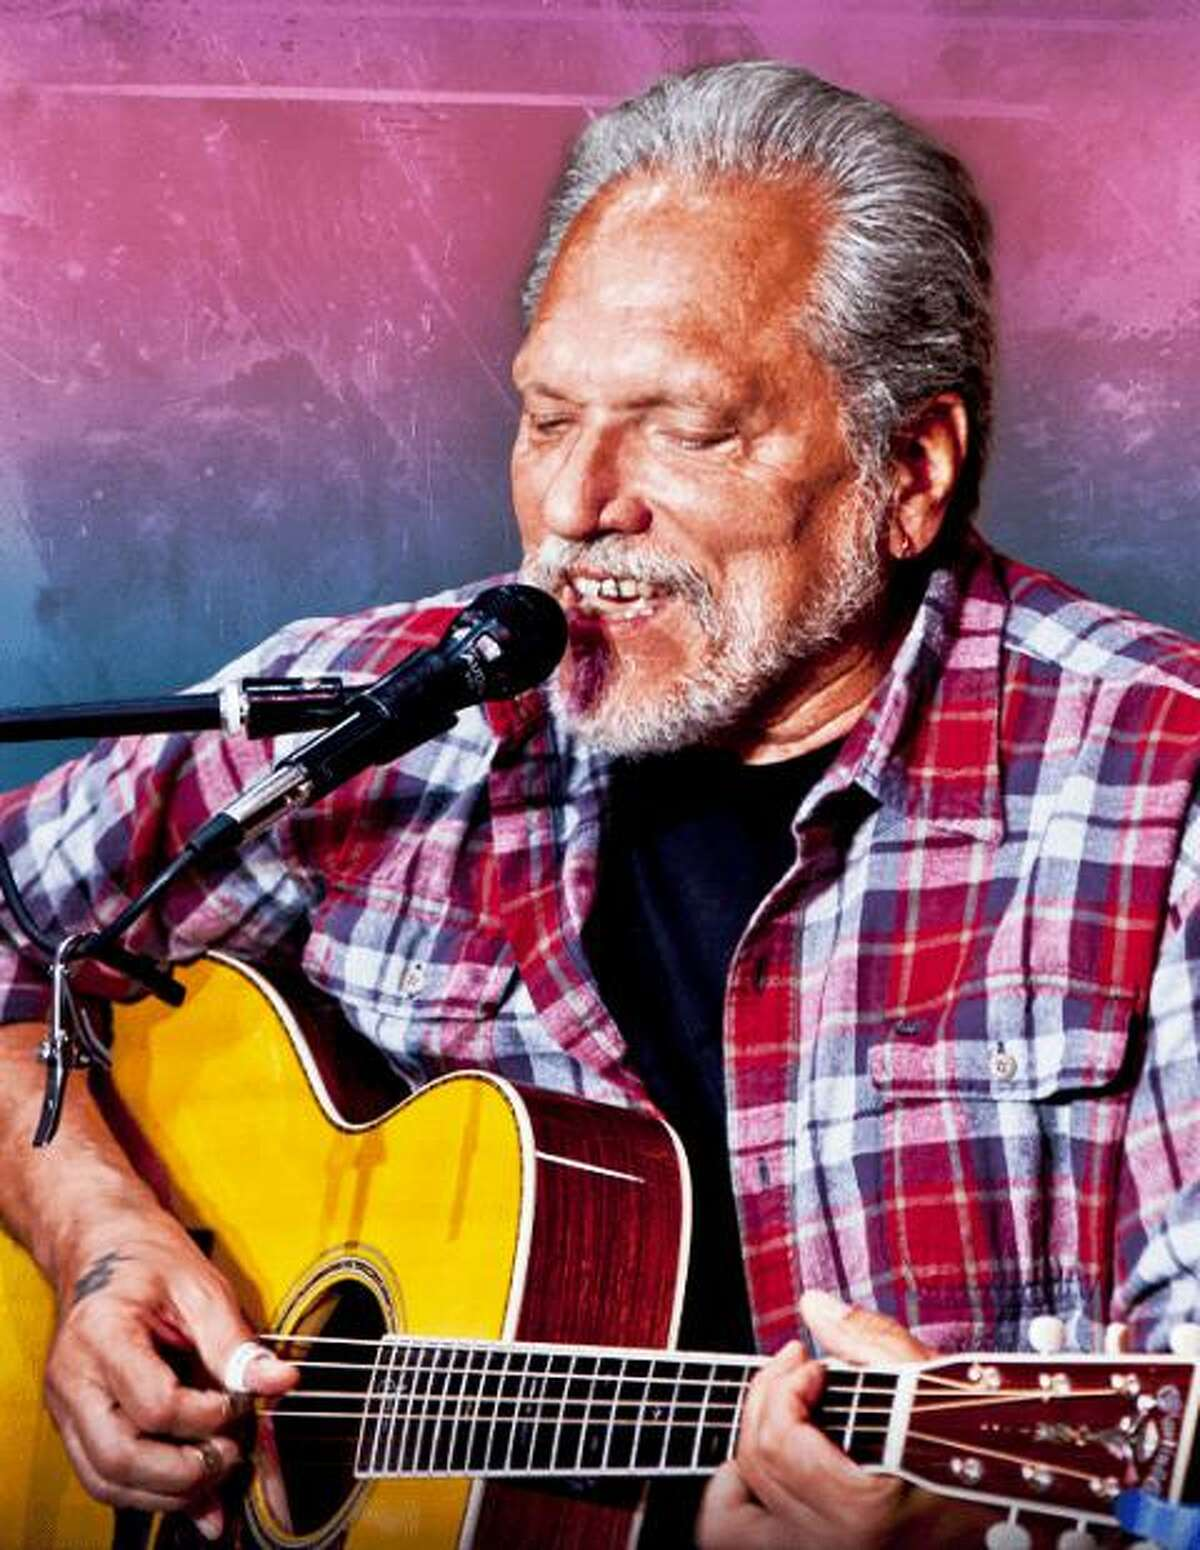 Fan favorite Jorma Kaukonen returns to the Ridgefield Playhouse Tent for July 18 for two shows at 4 p.m. and 7:30 p.m.